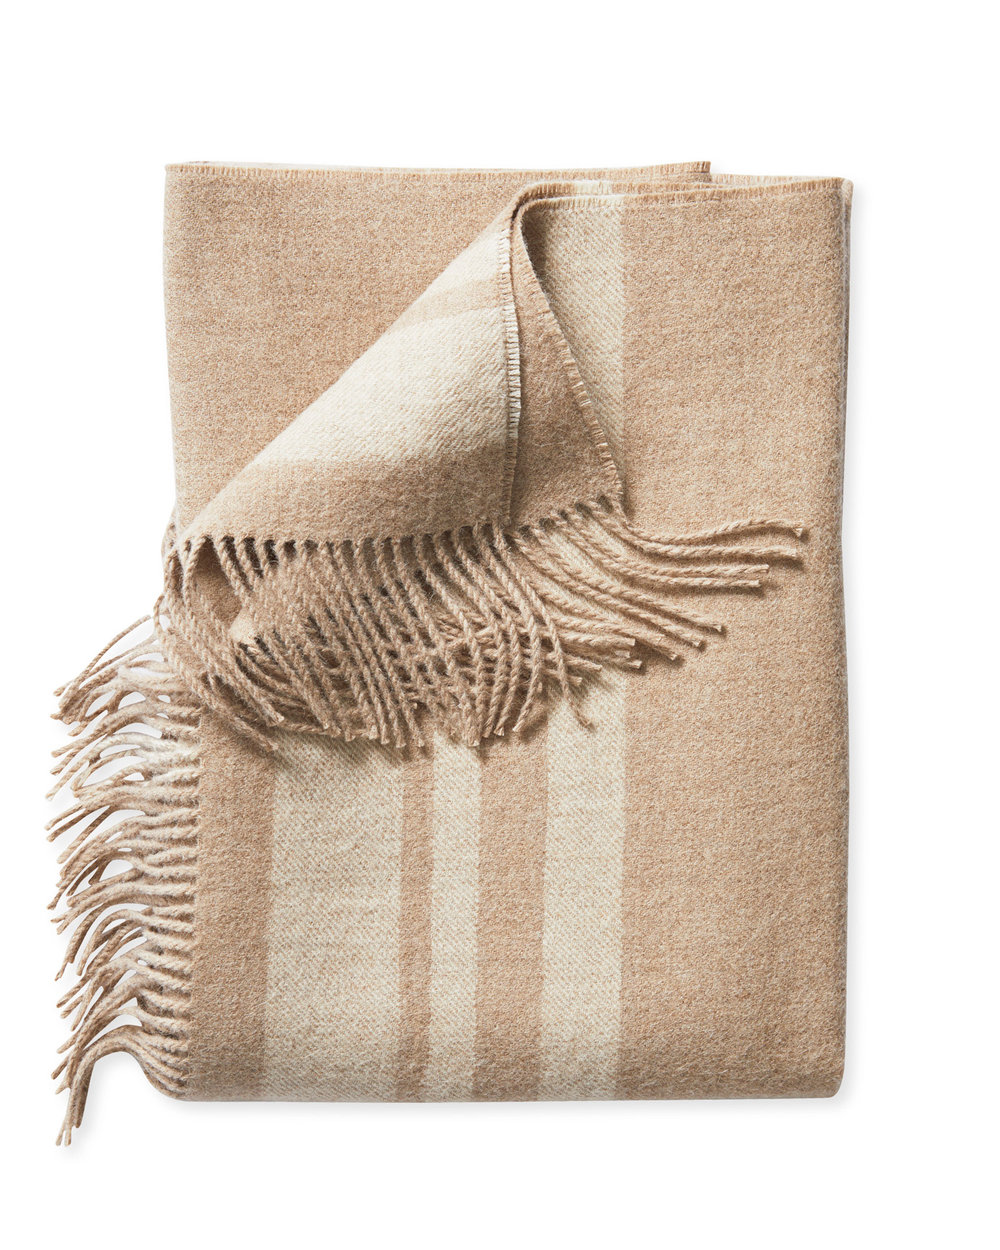 Throw_Blanket_Avery_Oatmeal_Ivory_Fold_MV_1250_Crop_SH.jpg